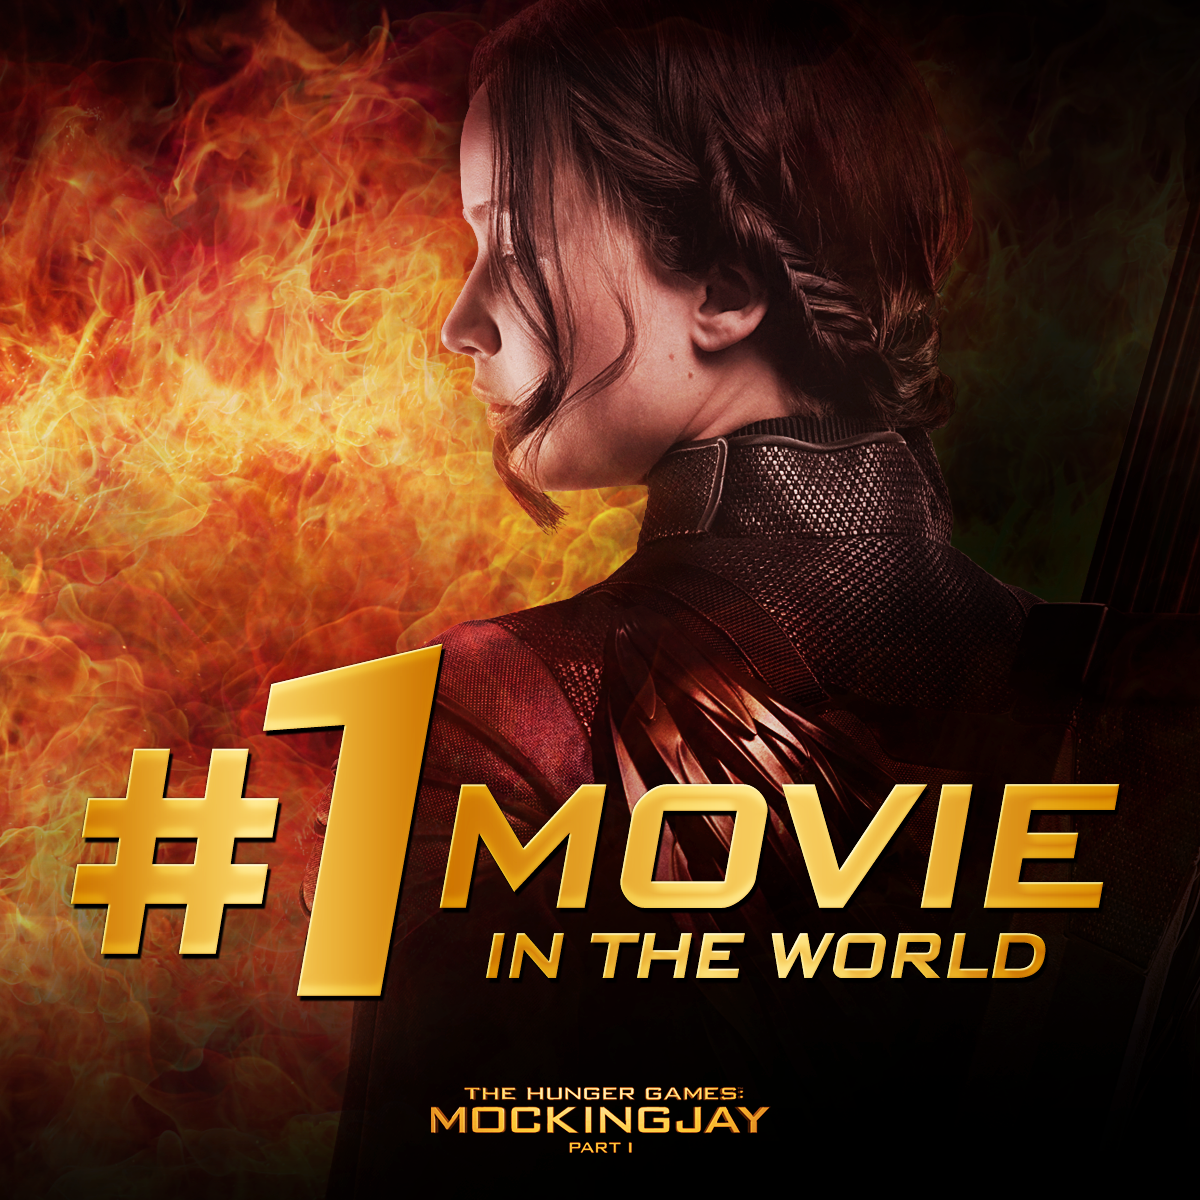 Thank You For Making The Hunger Games Mockingjay Part 1 The 1 Movie In The World Hunger Games Mockingjay Hunger Games Mockingjay